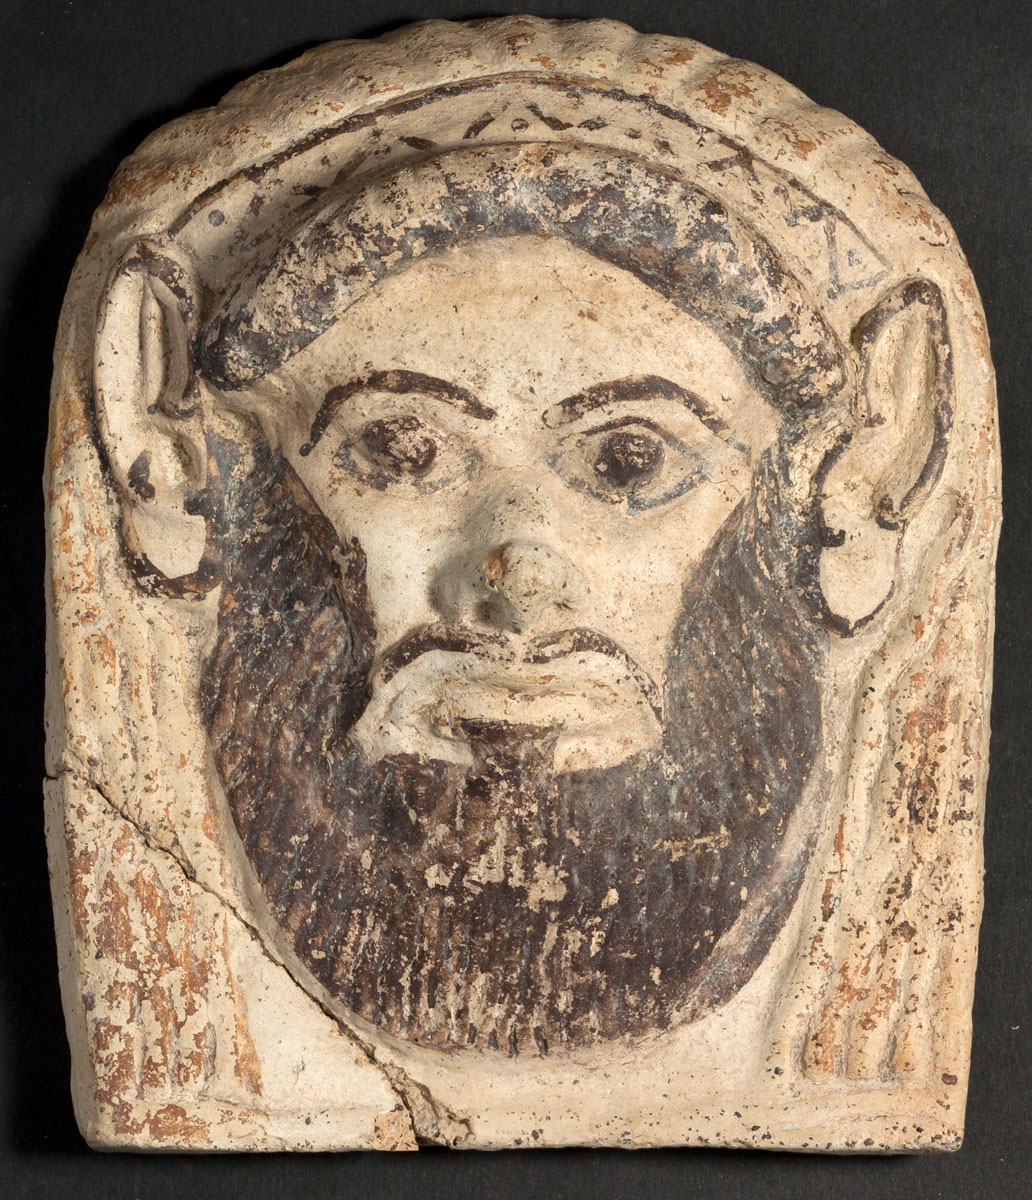 Antefix with Silenus mask. End of 6th - beginning of 5th century BC. Giardini Naxos Museo Archeologico.